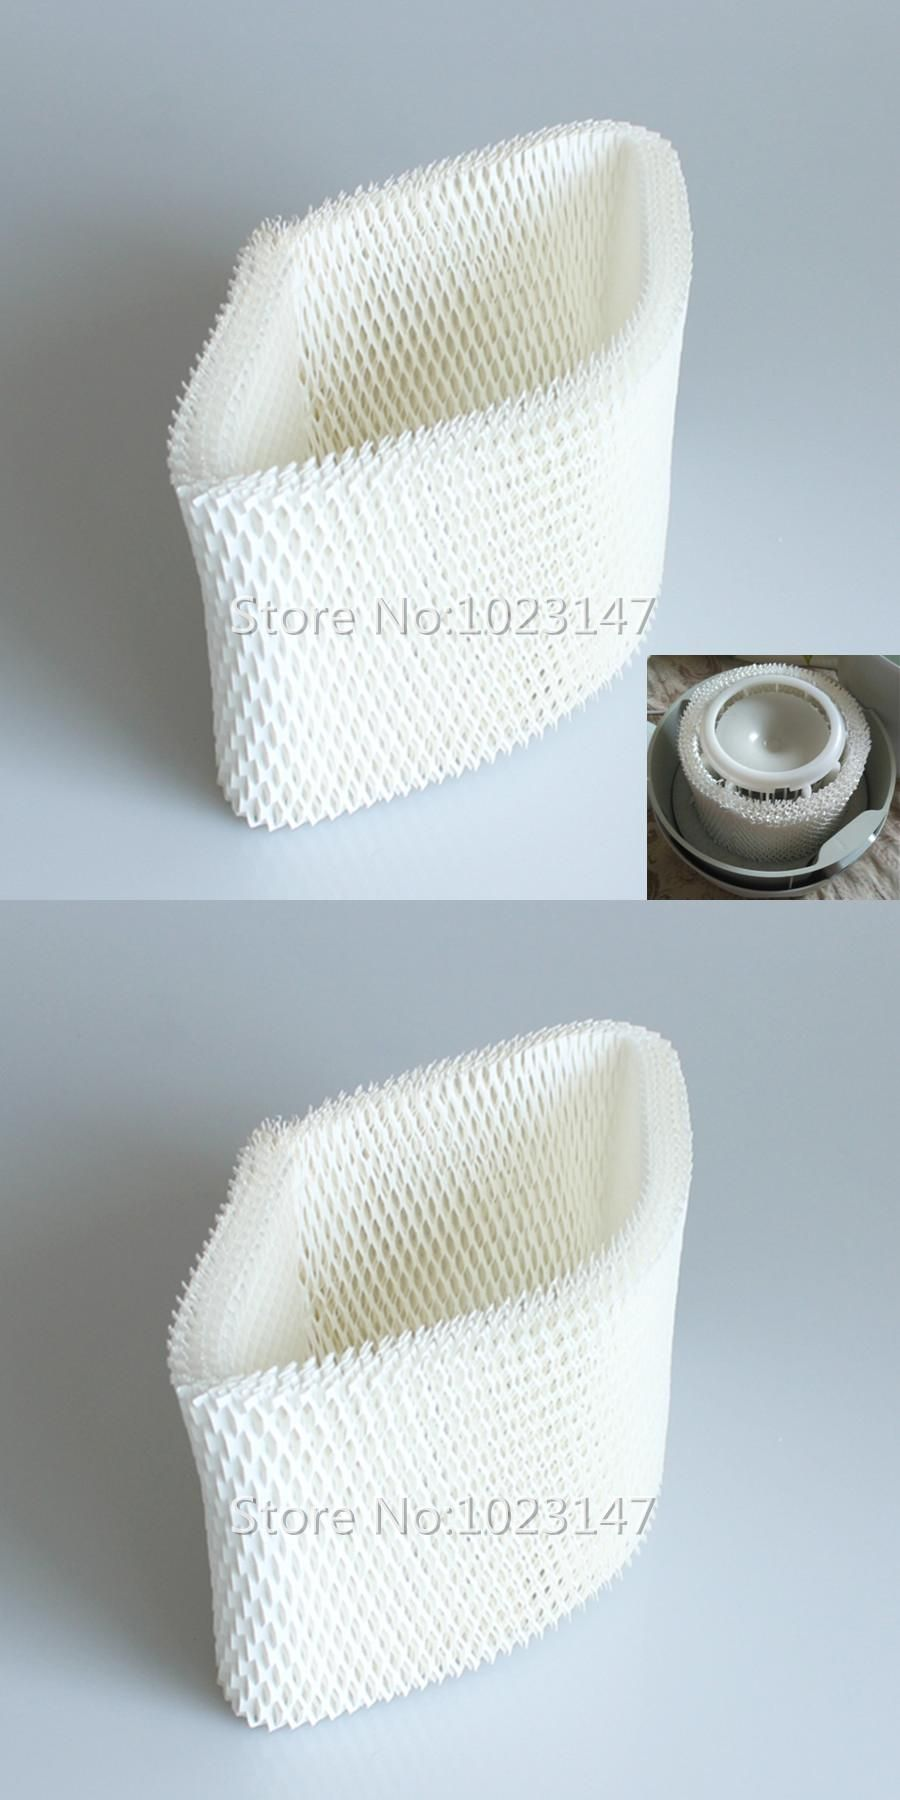 [Visit to Buy] 1 piece HEPA Filter Core replacement for